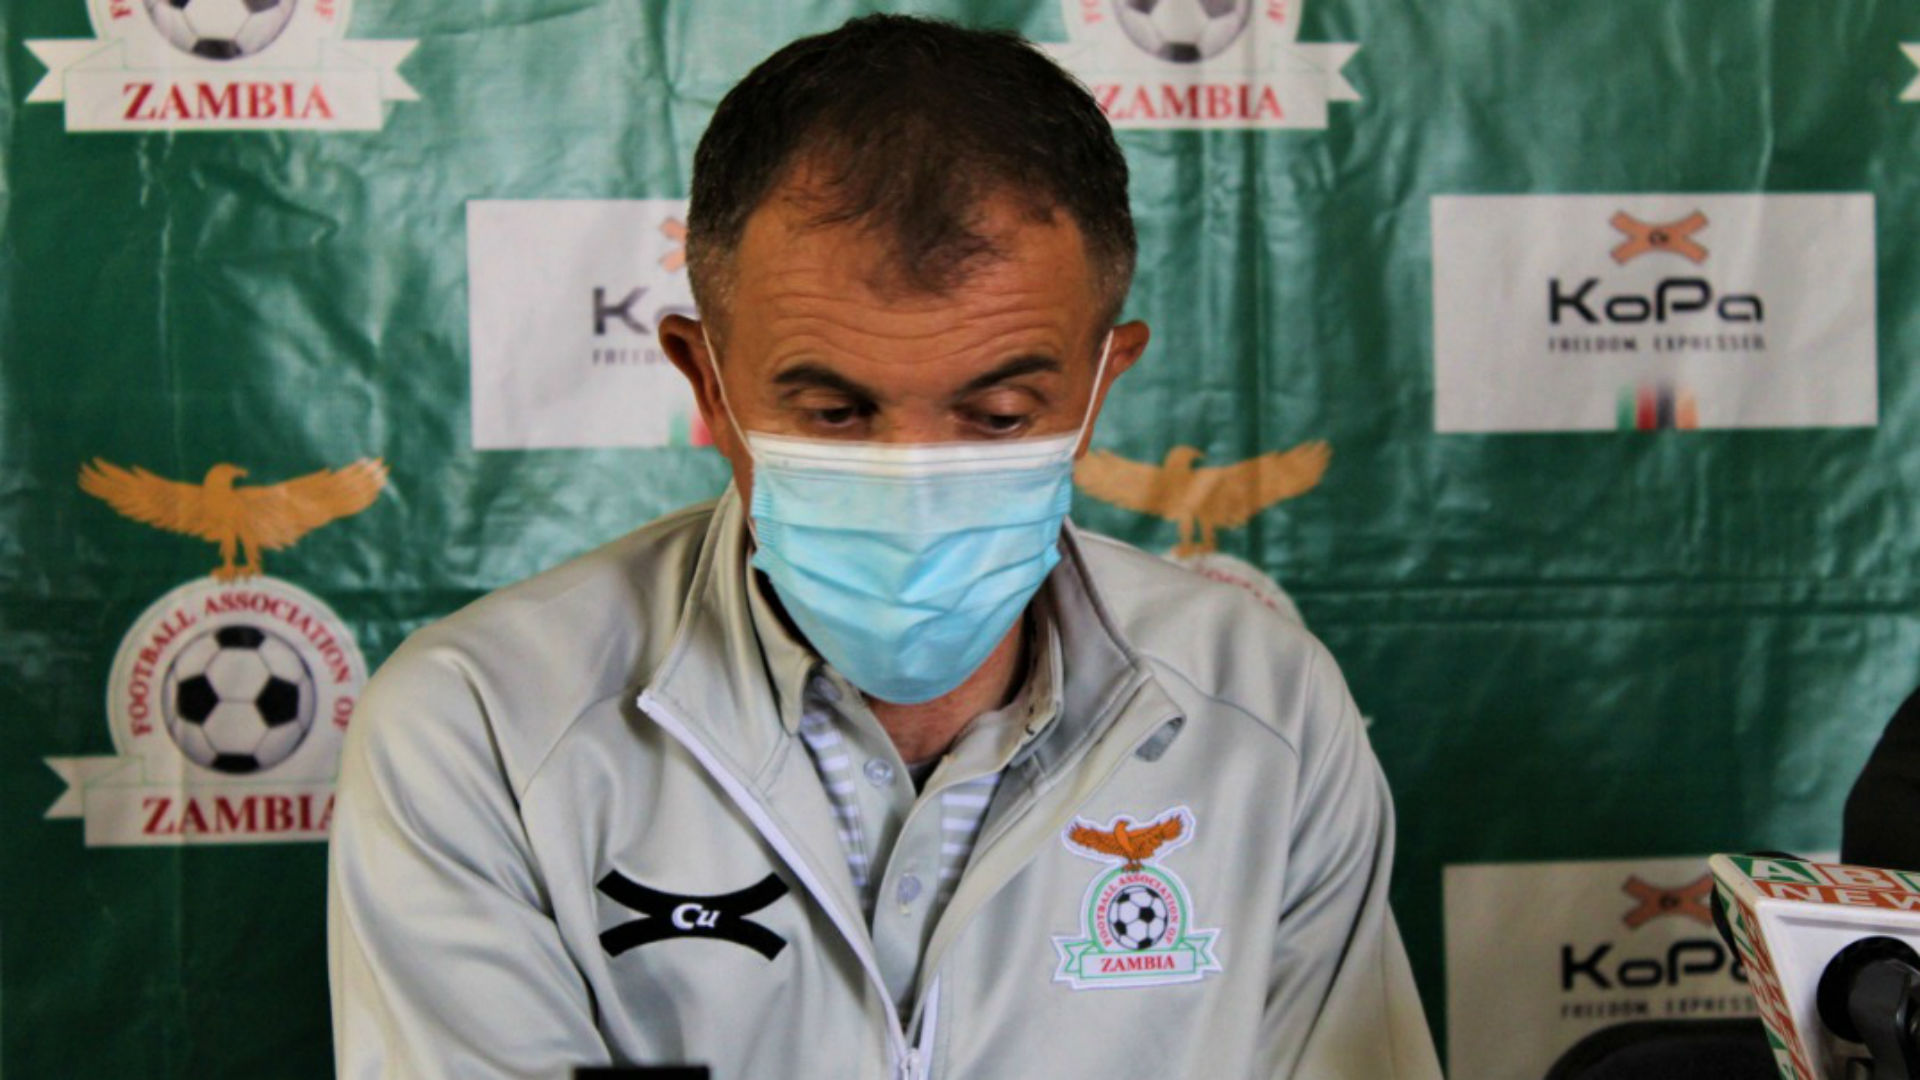 'We are determined to establish iron discipline' – Zambia's Sredojevic after Chongo release